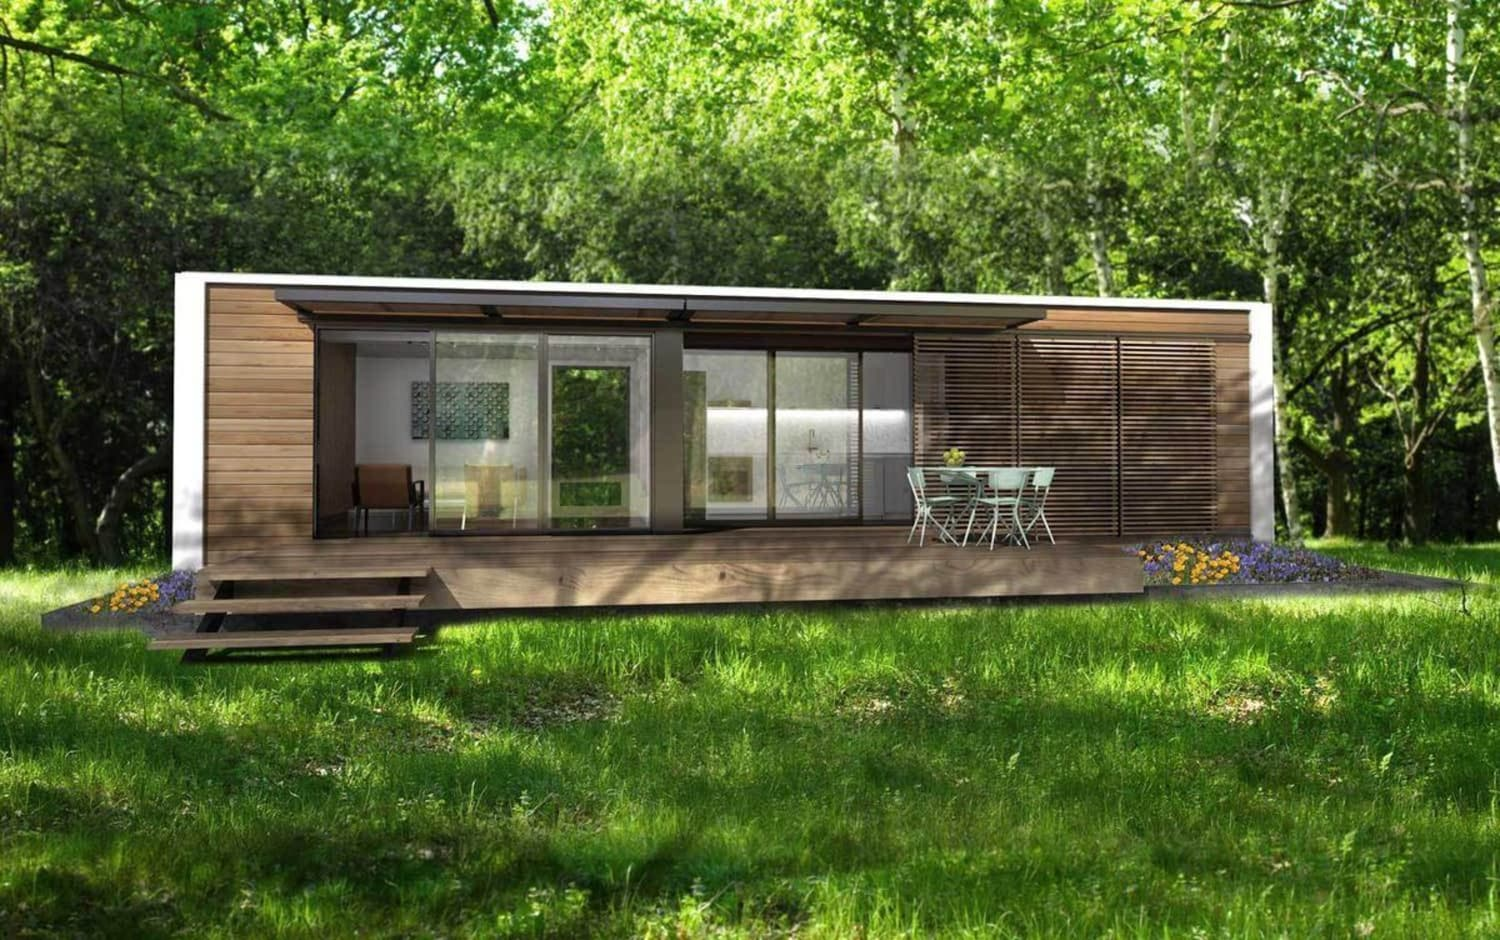 6 Shipping Container Homes on eBay, Starting at $16K